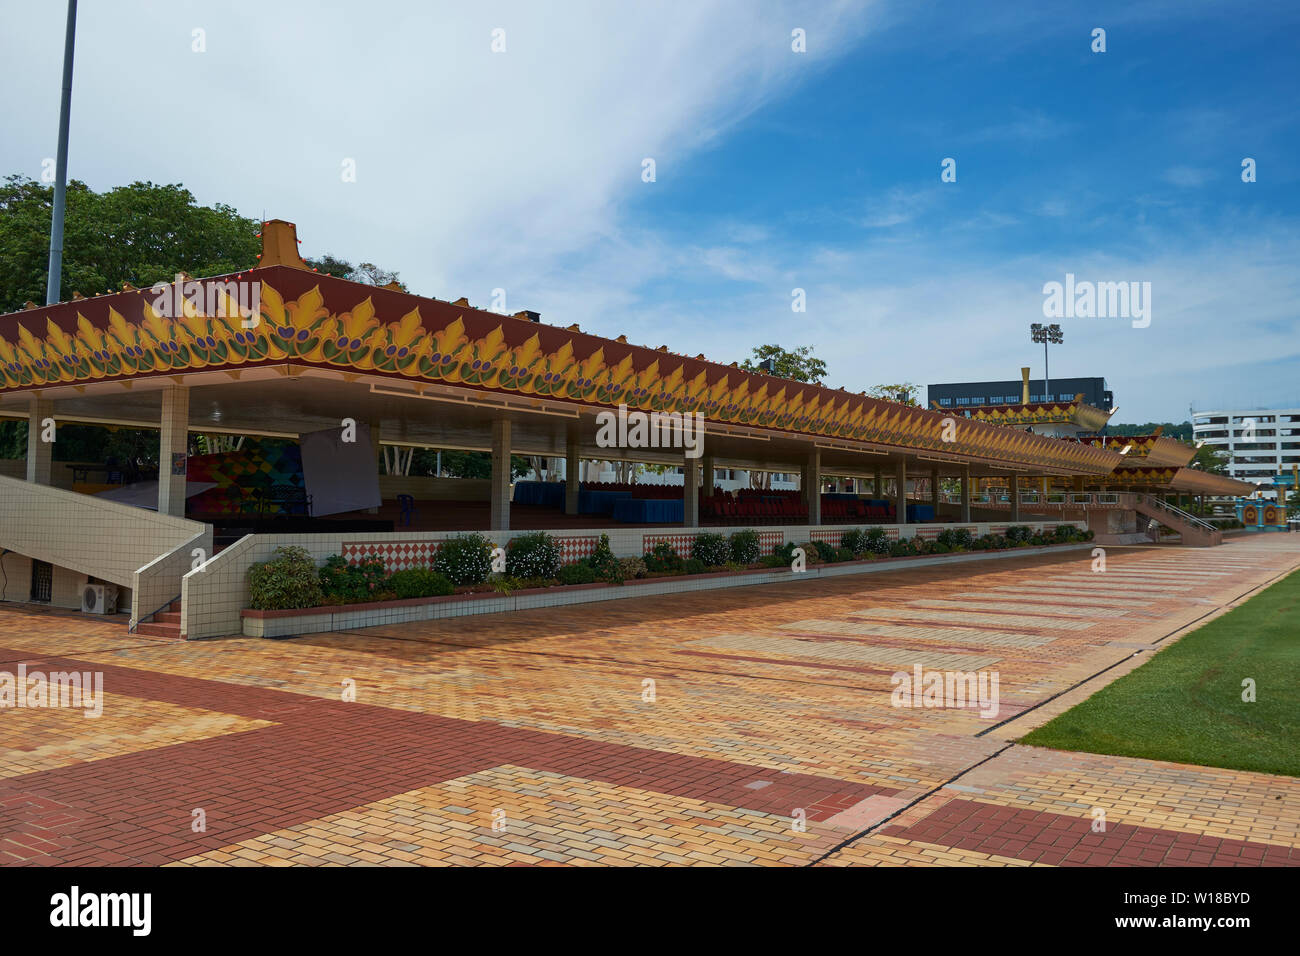 The main grandstand for viewing events at the Taman Haji Sir Muda Omar Ali Saifuddien field in Bandar Seri Begawan, Brunei - Stock Image